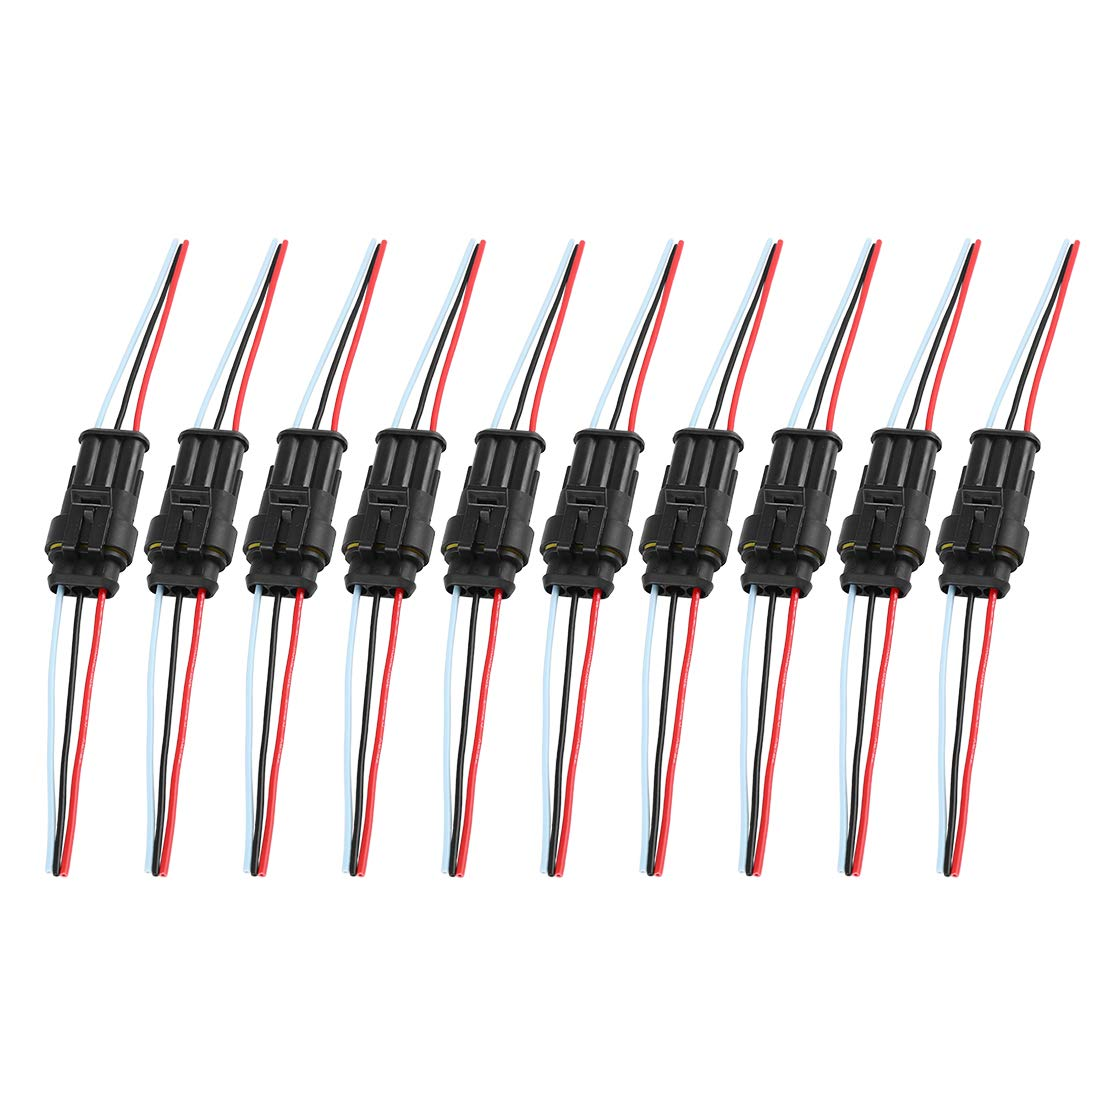 X AUTOHAUX 4 Pins Way Car Waterproof Electrical Wire Cable Connector 10pcs